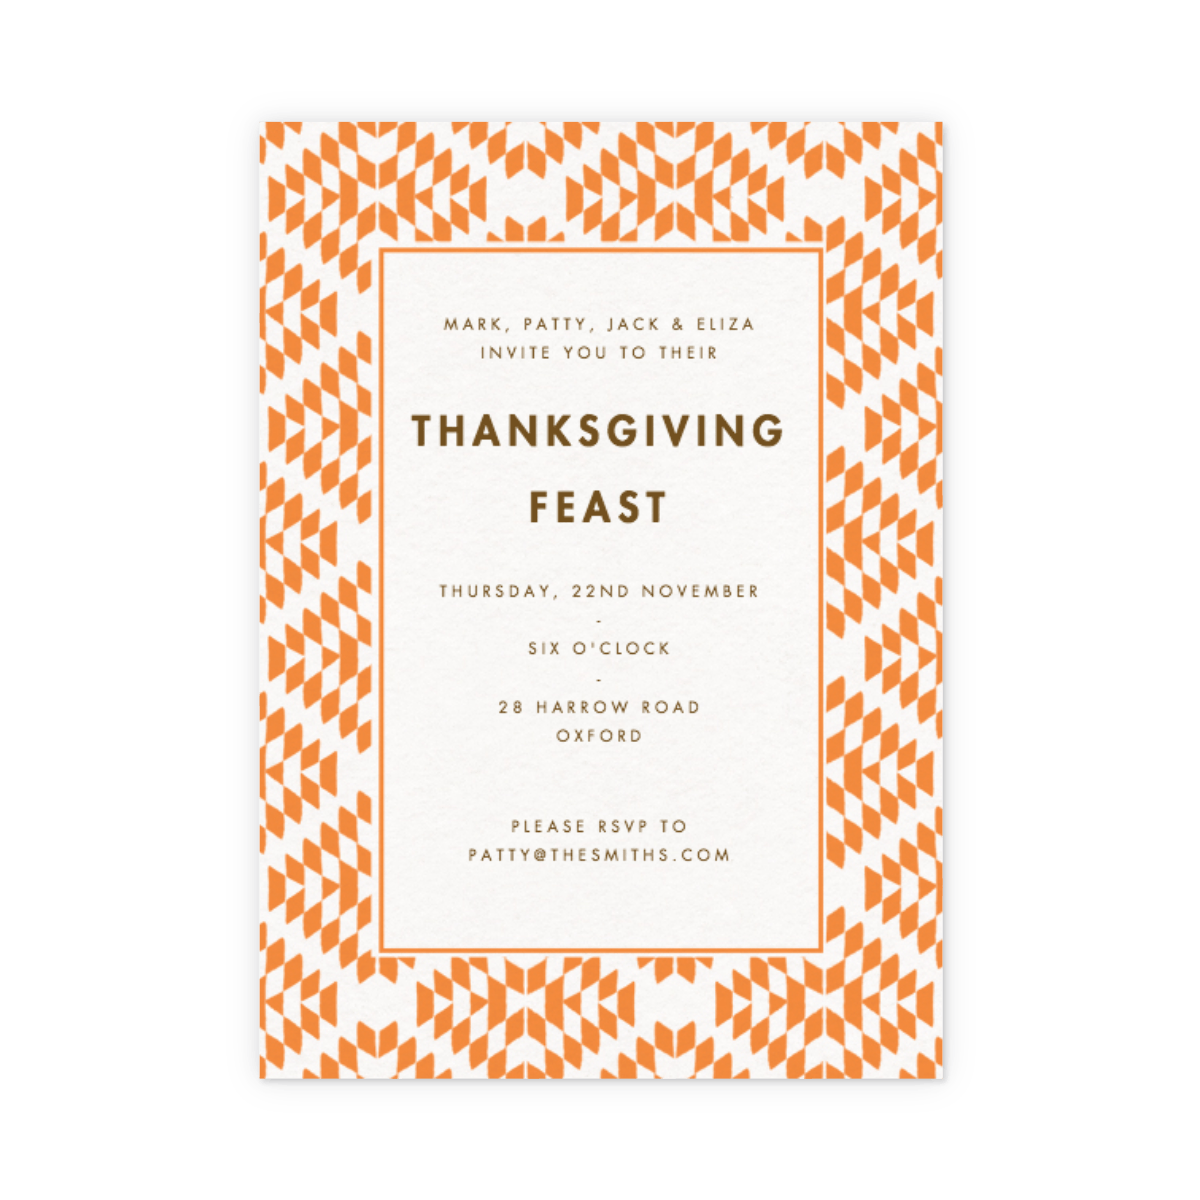 Https%3a%2f%2fwww.papier.com%2fproduct image%2f2097%2f4%2fthanksgiving geo 586 front 1540286679.png?ixlib=rb 1.1